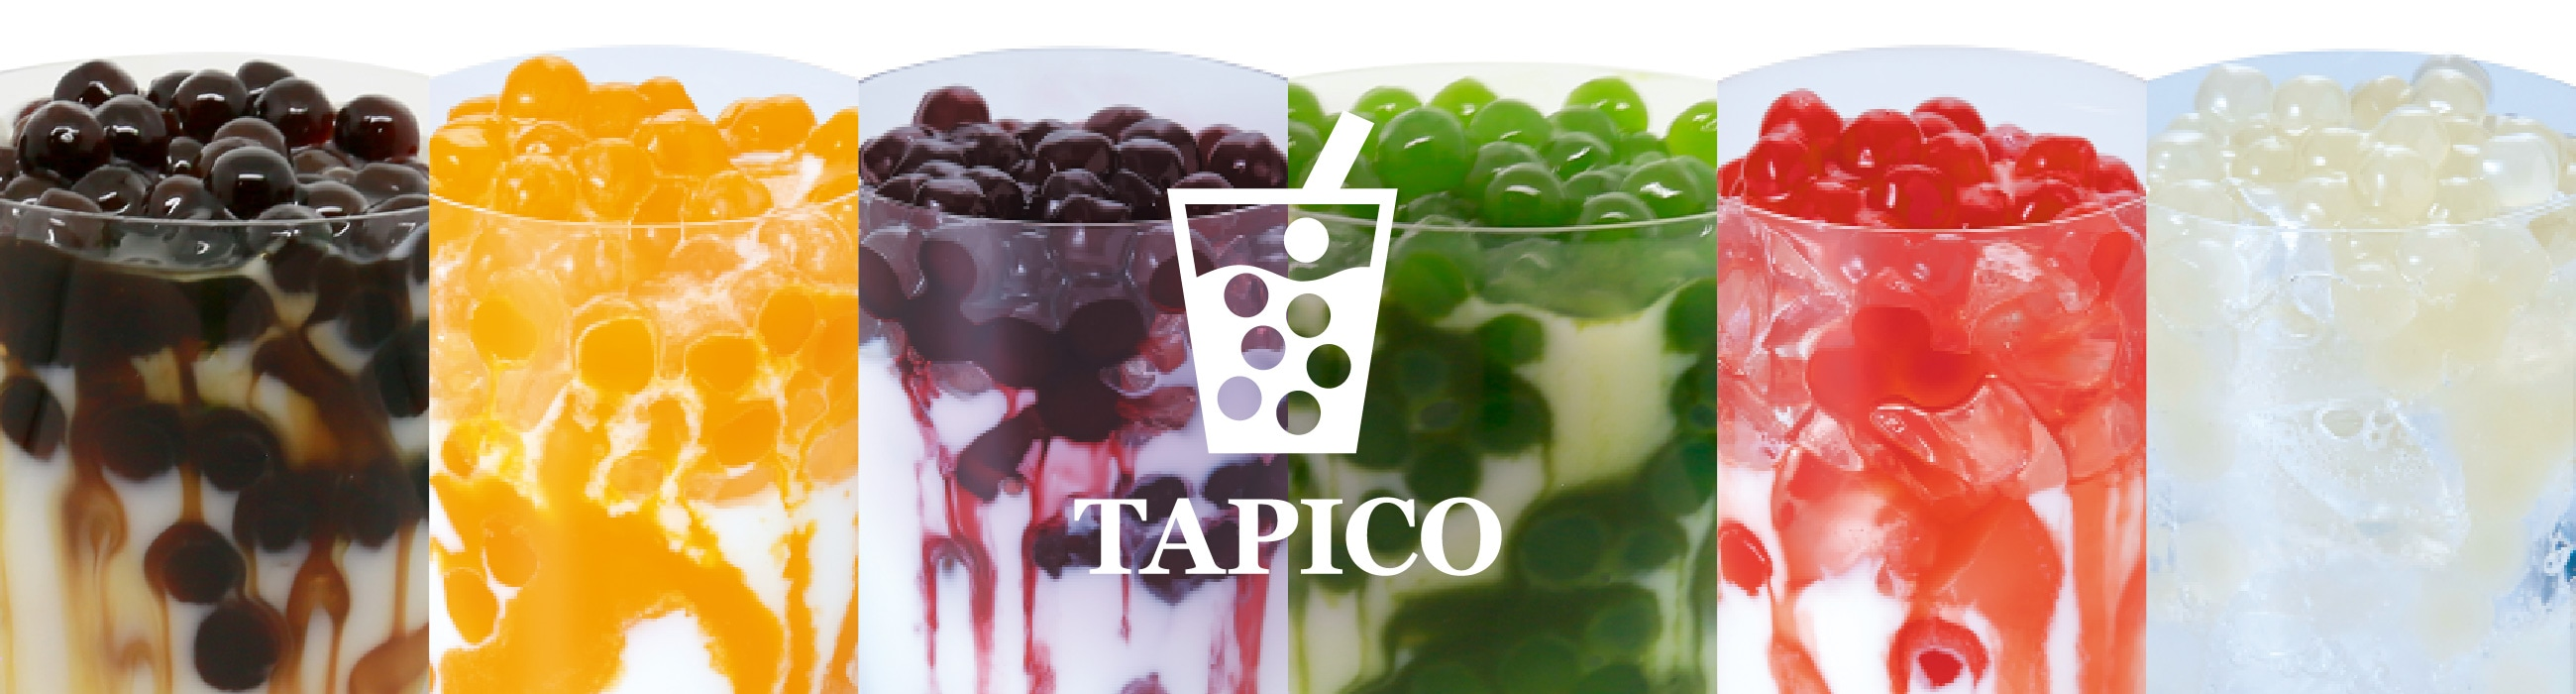 TAPICO